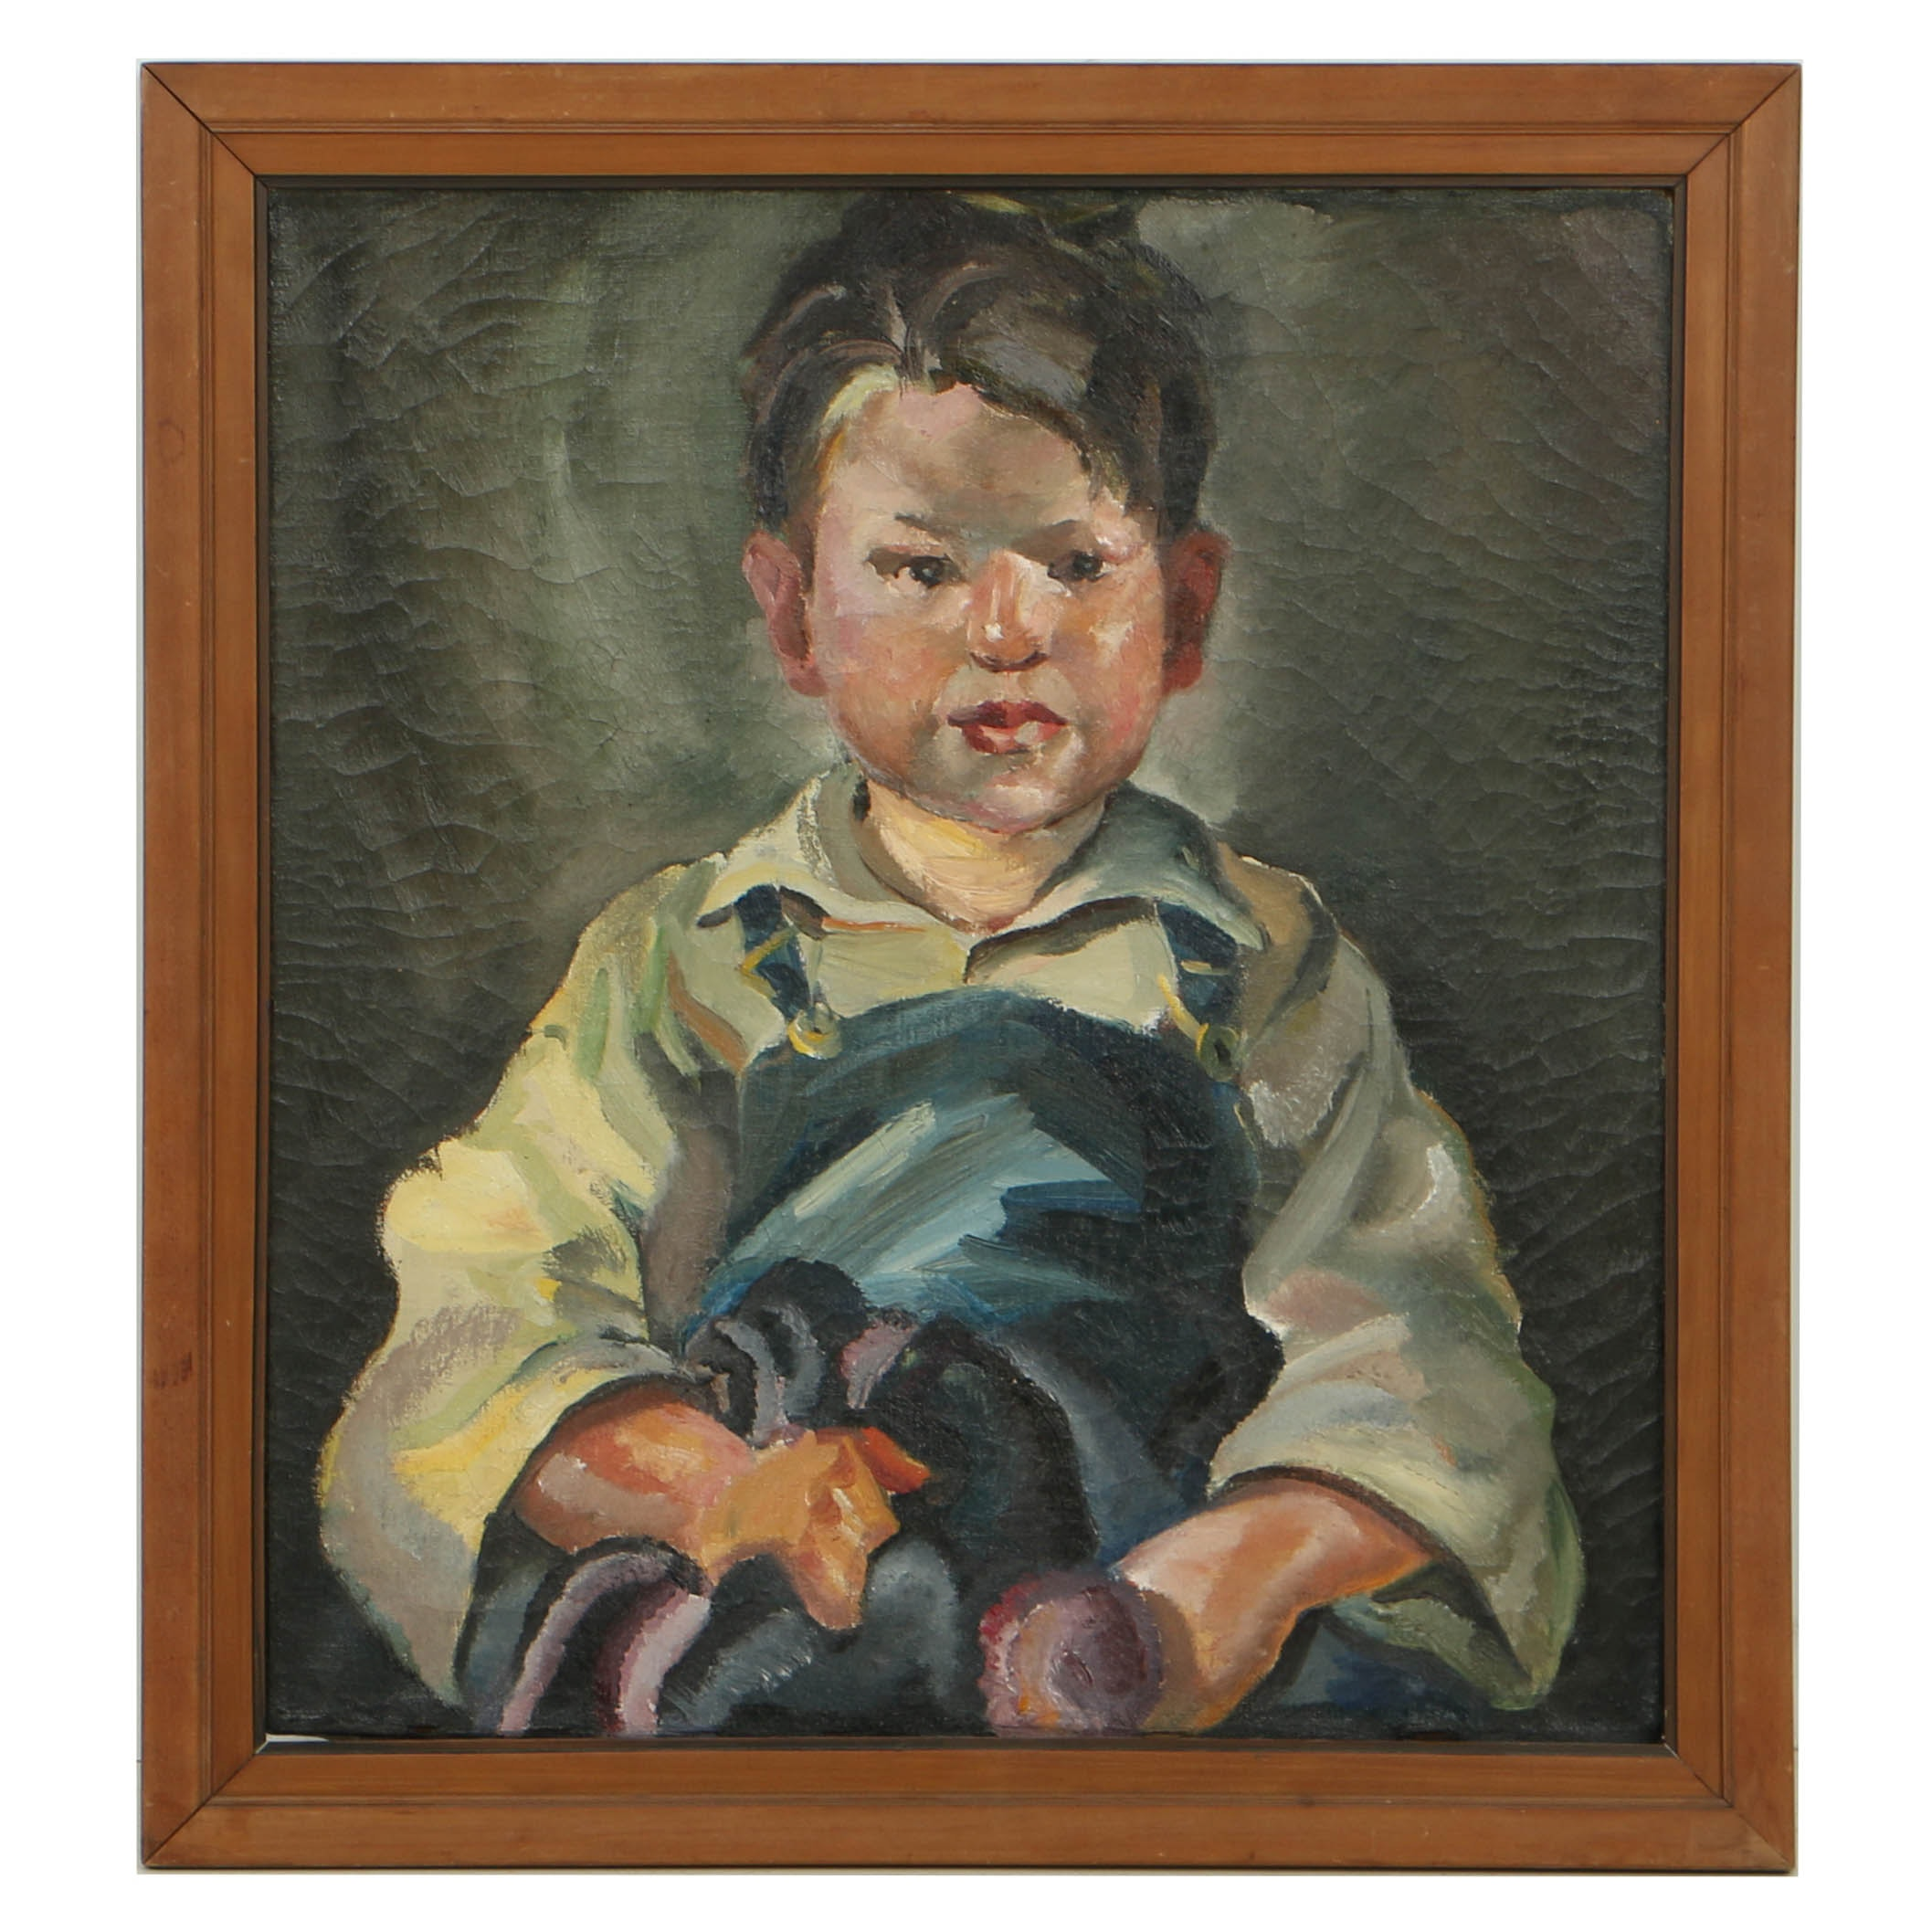 Attributed to William Sommer Oil Portrait on Canvas of Young Boy